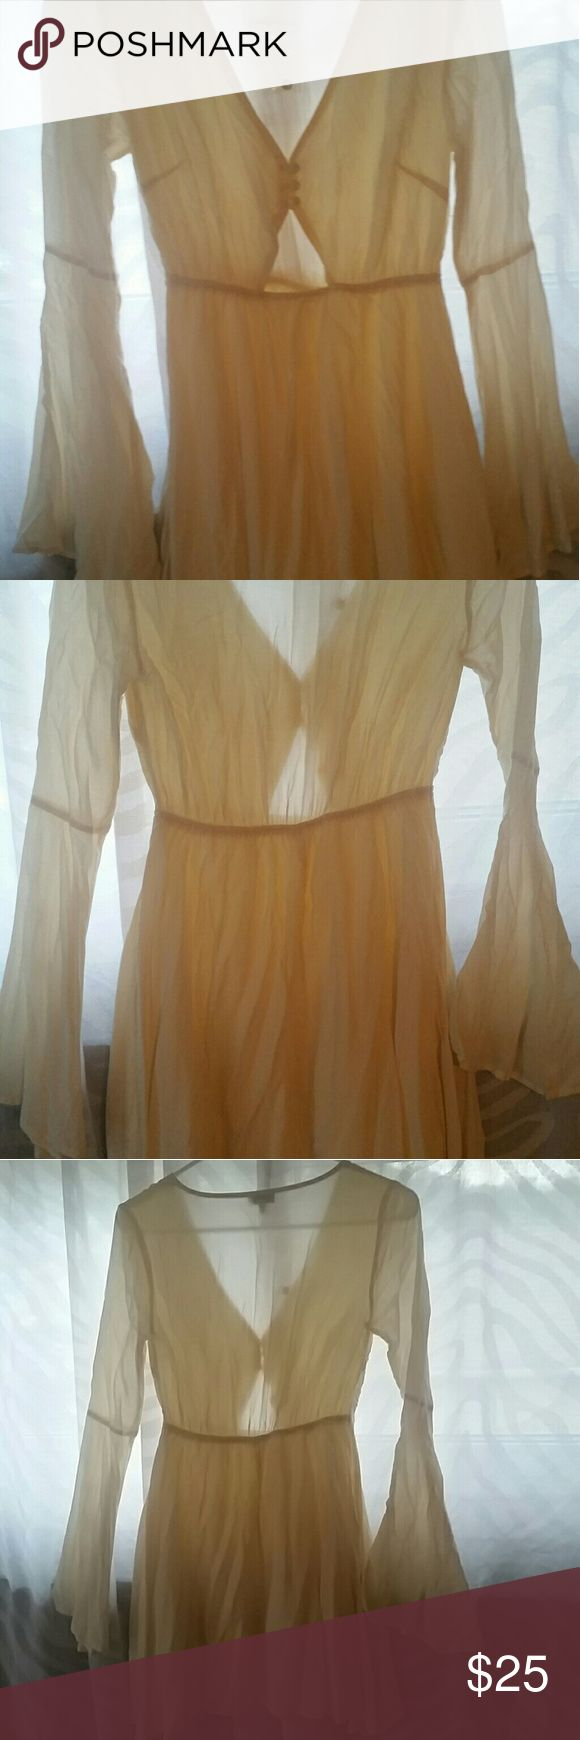 Bell sleeve mini dress Semi sheer ivory,cream color dress, never worn,purchased from Tobi. Has bell sleeves and a fit and flare style to it, just too small for my chest area. Tobi Dresses Mini